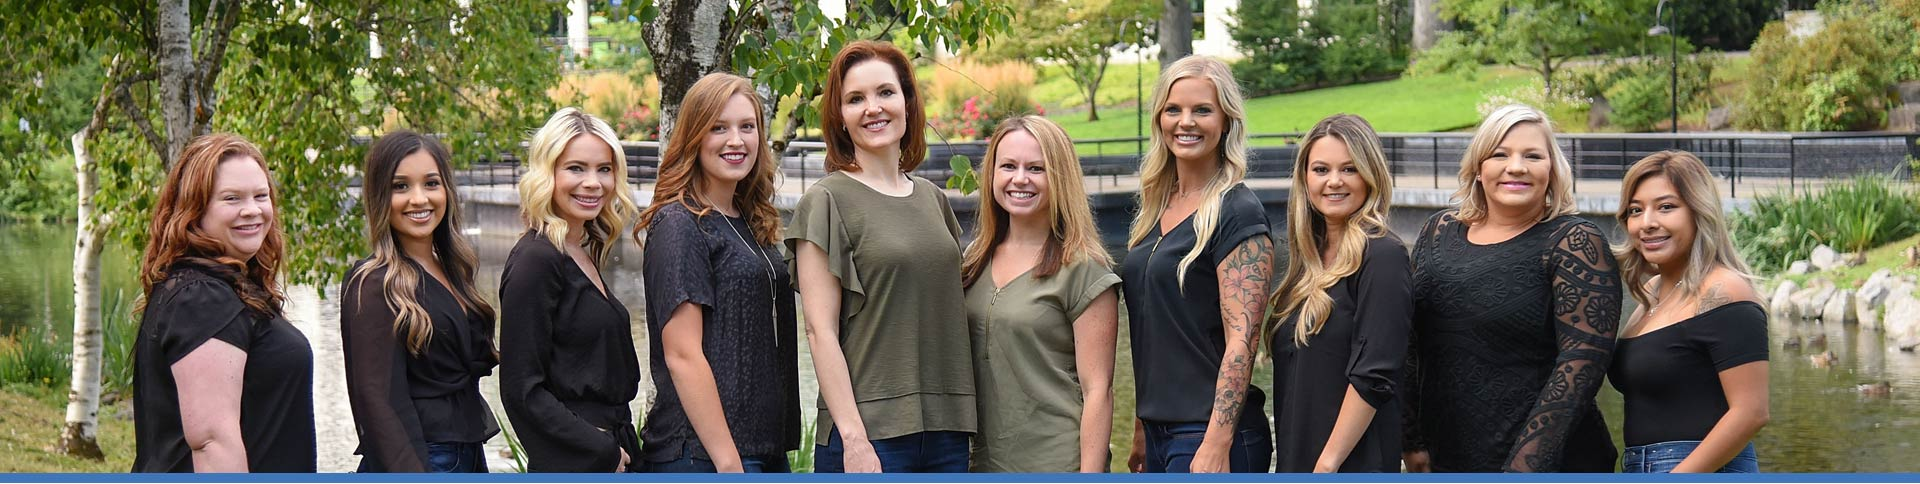 Cruikshank-Orthodontics-Forest-Grove-Hillsboro-OR-Group-Staff-Photo-Homepage